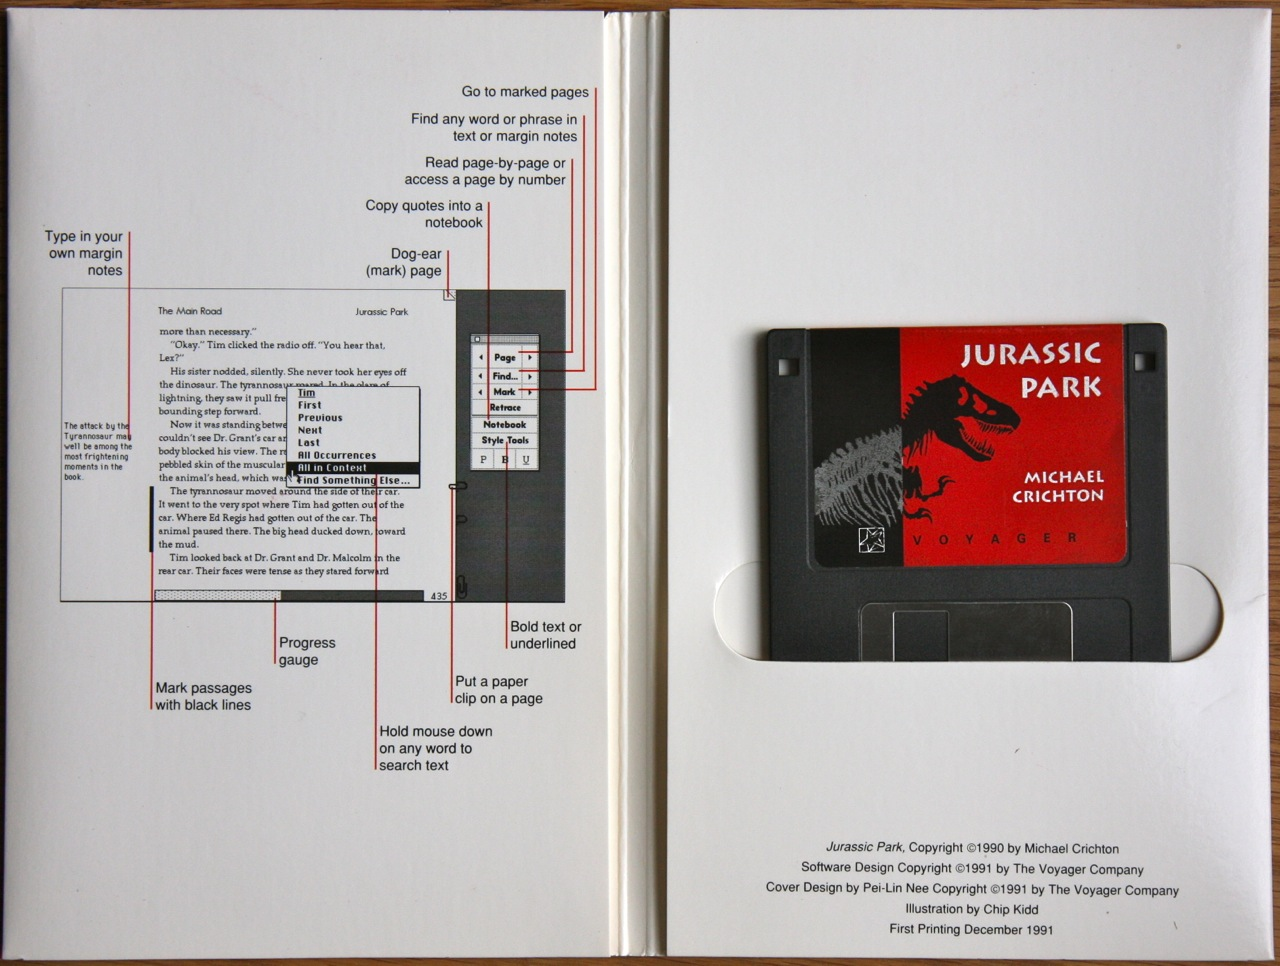 Jurassic Park Expanded Book, Voyager Company, 1991. Fonte: http://alfabravo.com/2011/08/early-ebooks-and-why-they-failed/